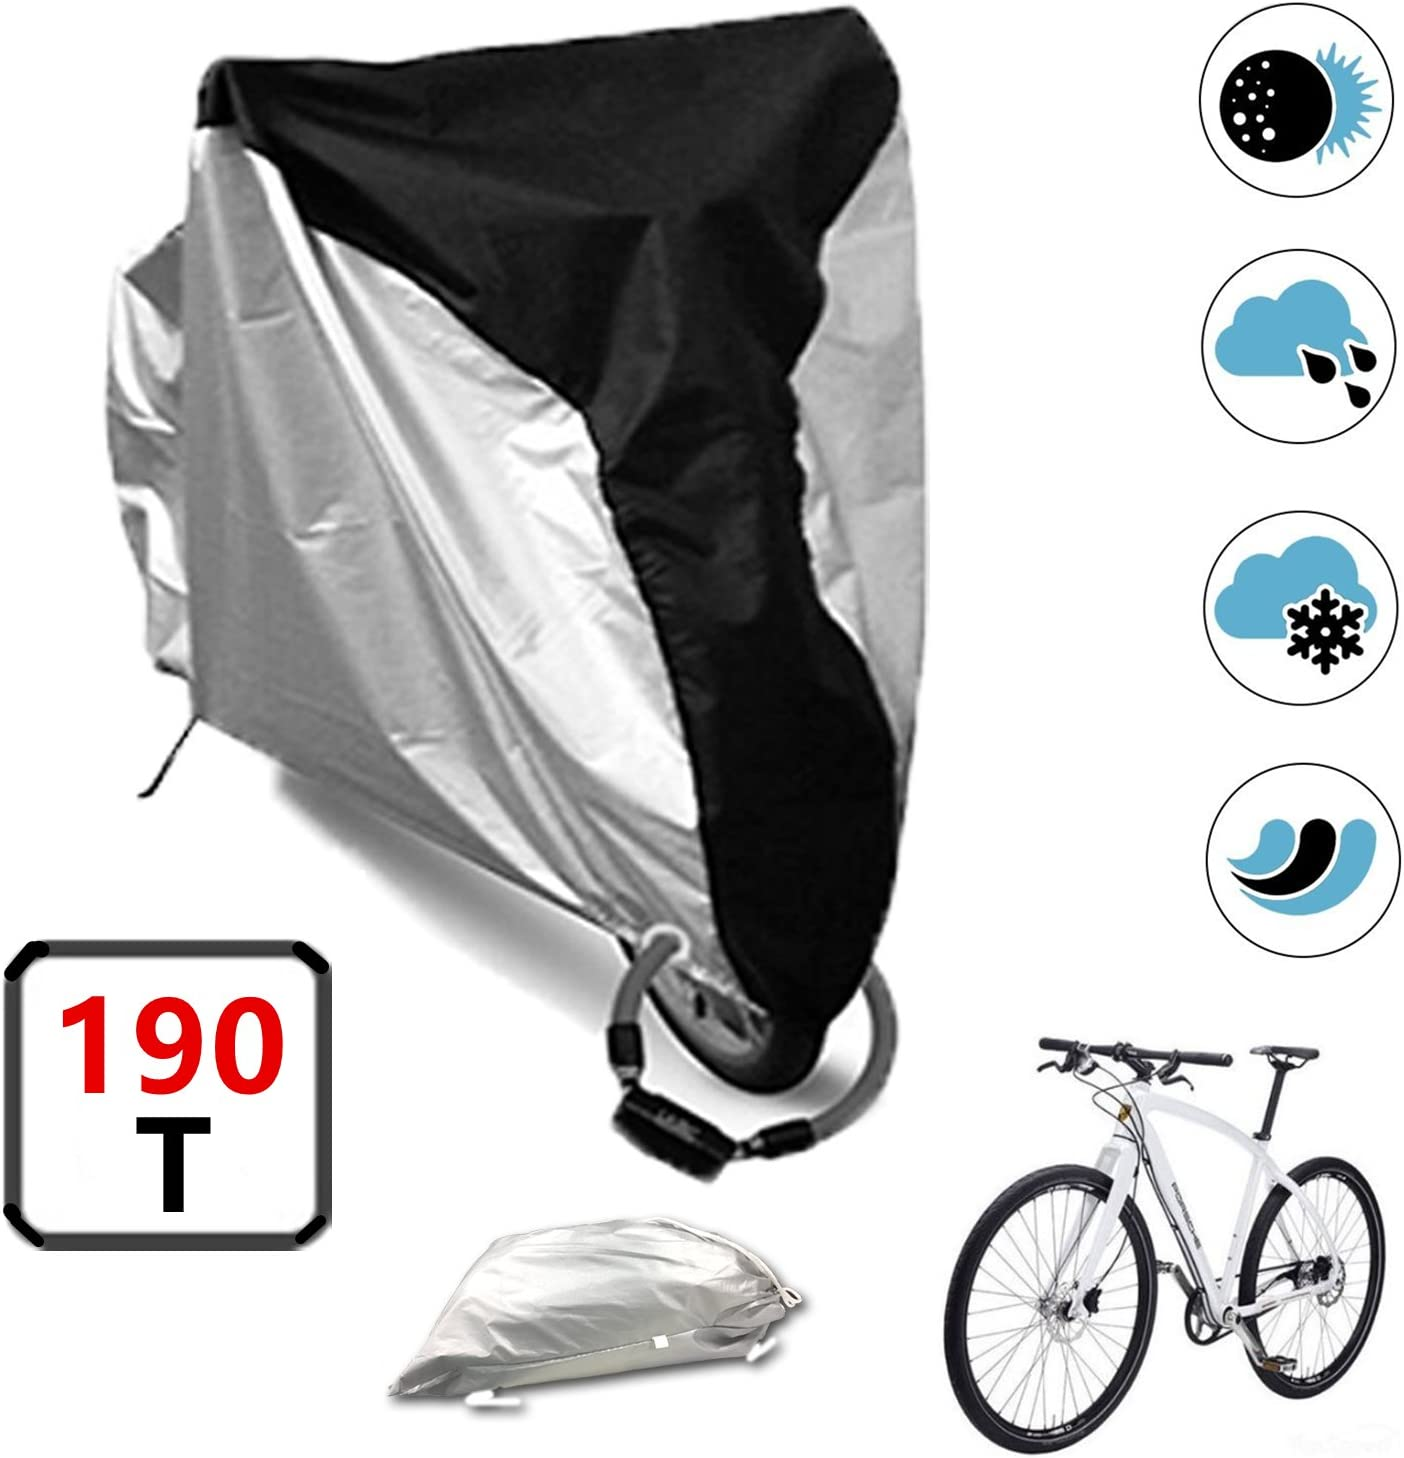 Details about  /Bicycle Rain Cover Bike Outdoor Waterproof Sun Dust Protector Cycling